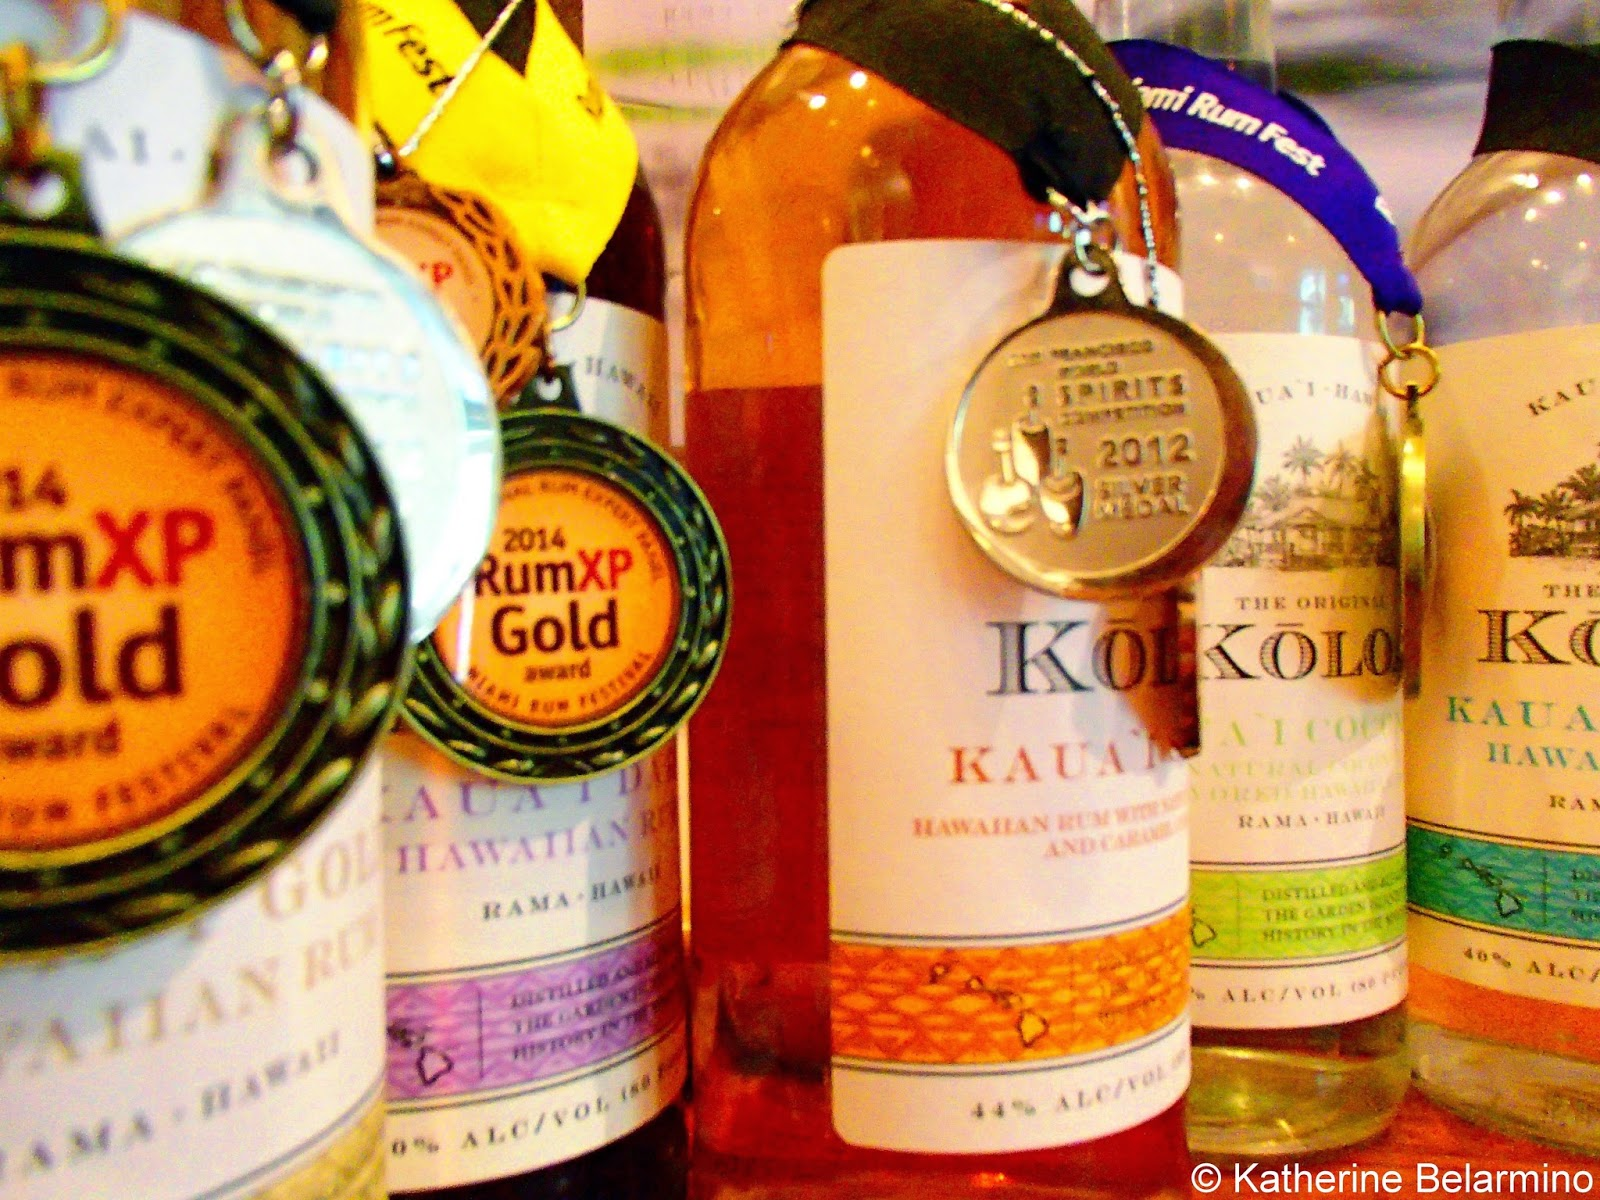 Award Winning Koloa Rum Company Rum Kauai Hawaii